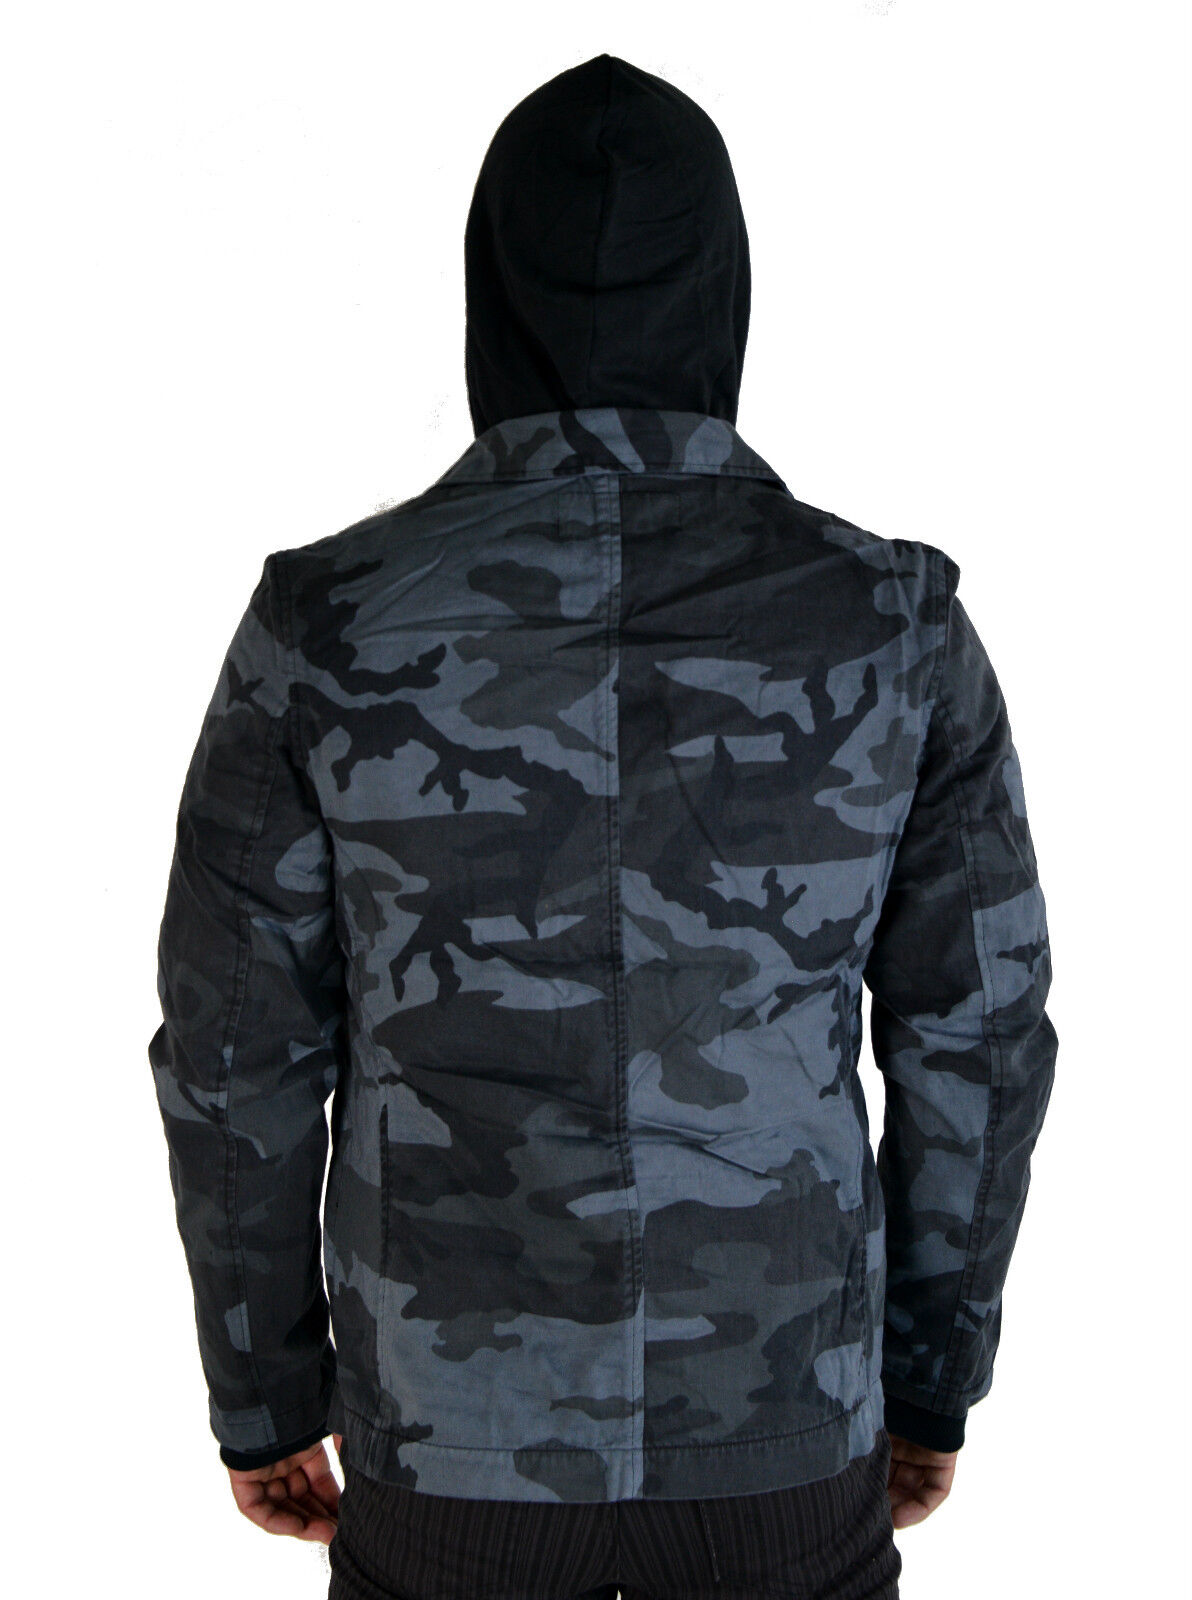 TRIPP MILITARY GOTH ARMY GRAY CAMO 2PC in 1 GOTHIC COAT HOODIE JACKET AF3832M Clothing, Shoes & Accessories